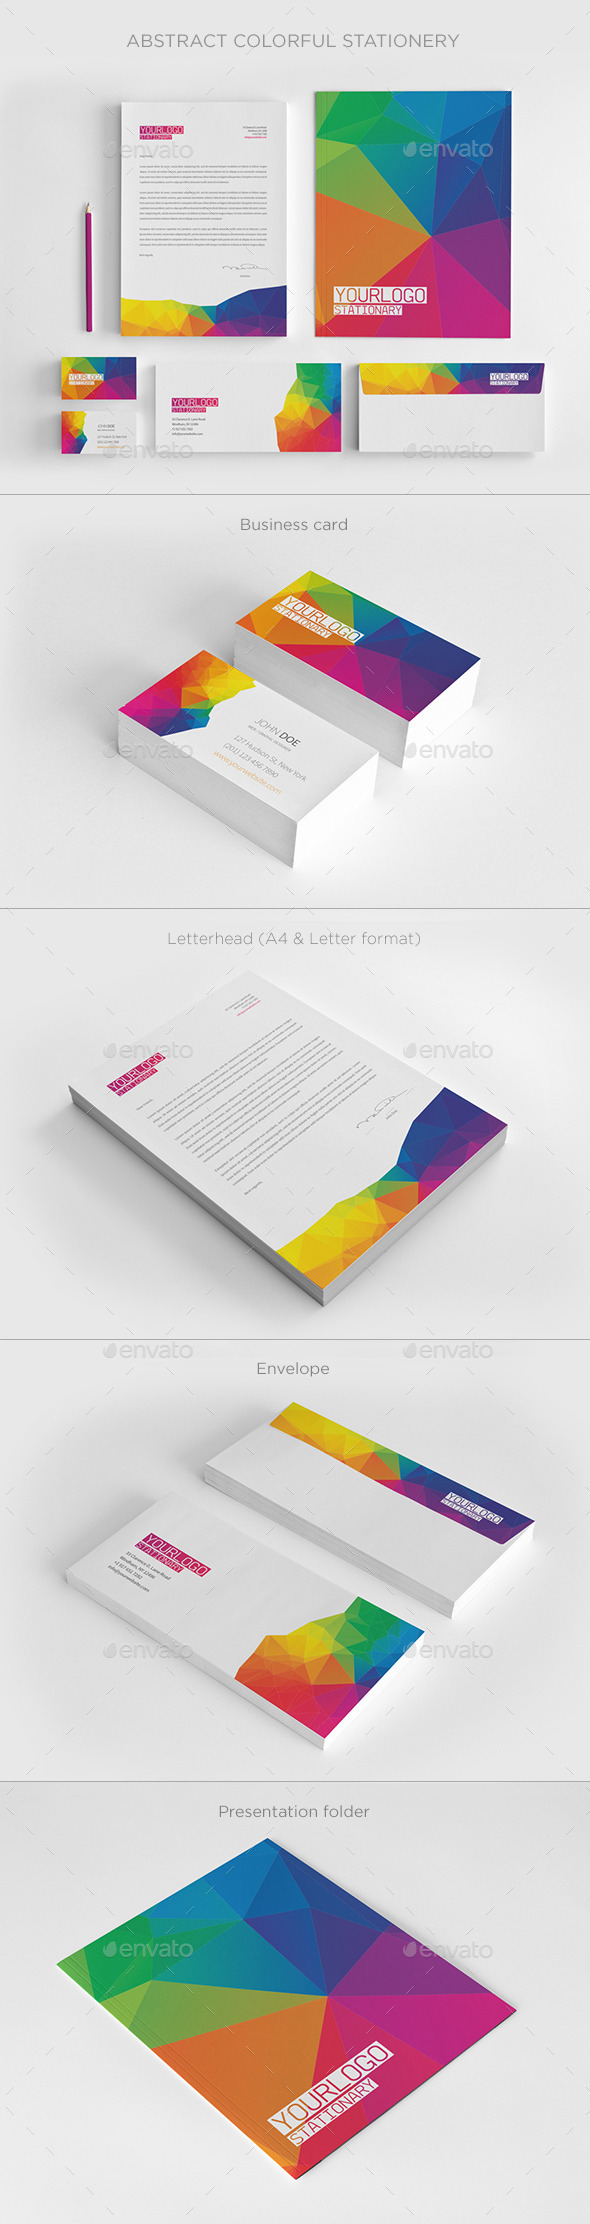 GraphicRiver Abstract Colorful Stationery 11067072